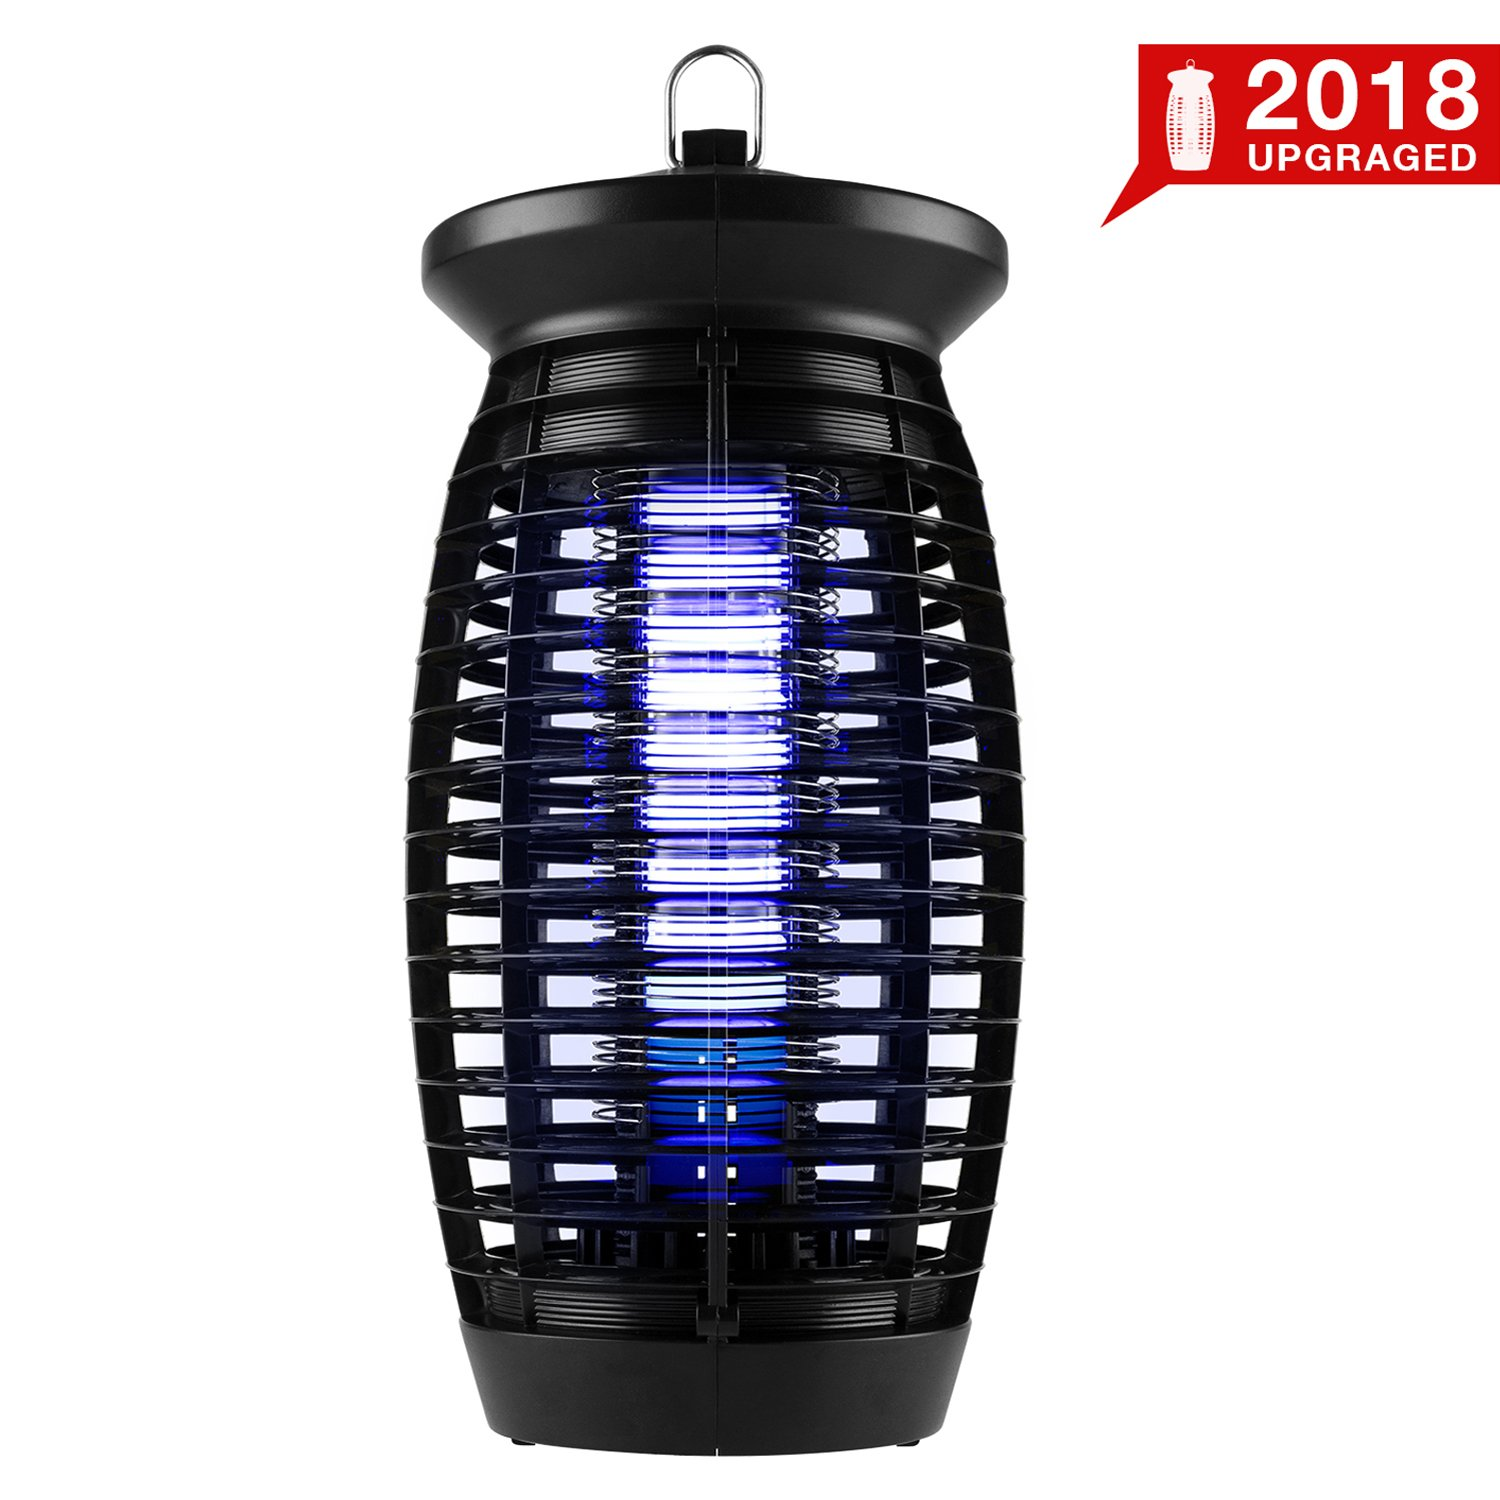 2018 Upgraded Electric Bug Zapper, Insect Killer, Mosquito Trap, Fly Gnat Trap with 120V UV Bug Light/500 Sq Ft Coverage for Home Office Store Indoor